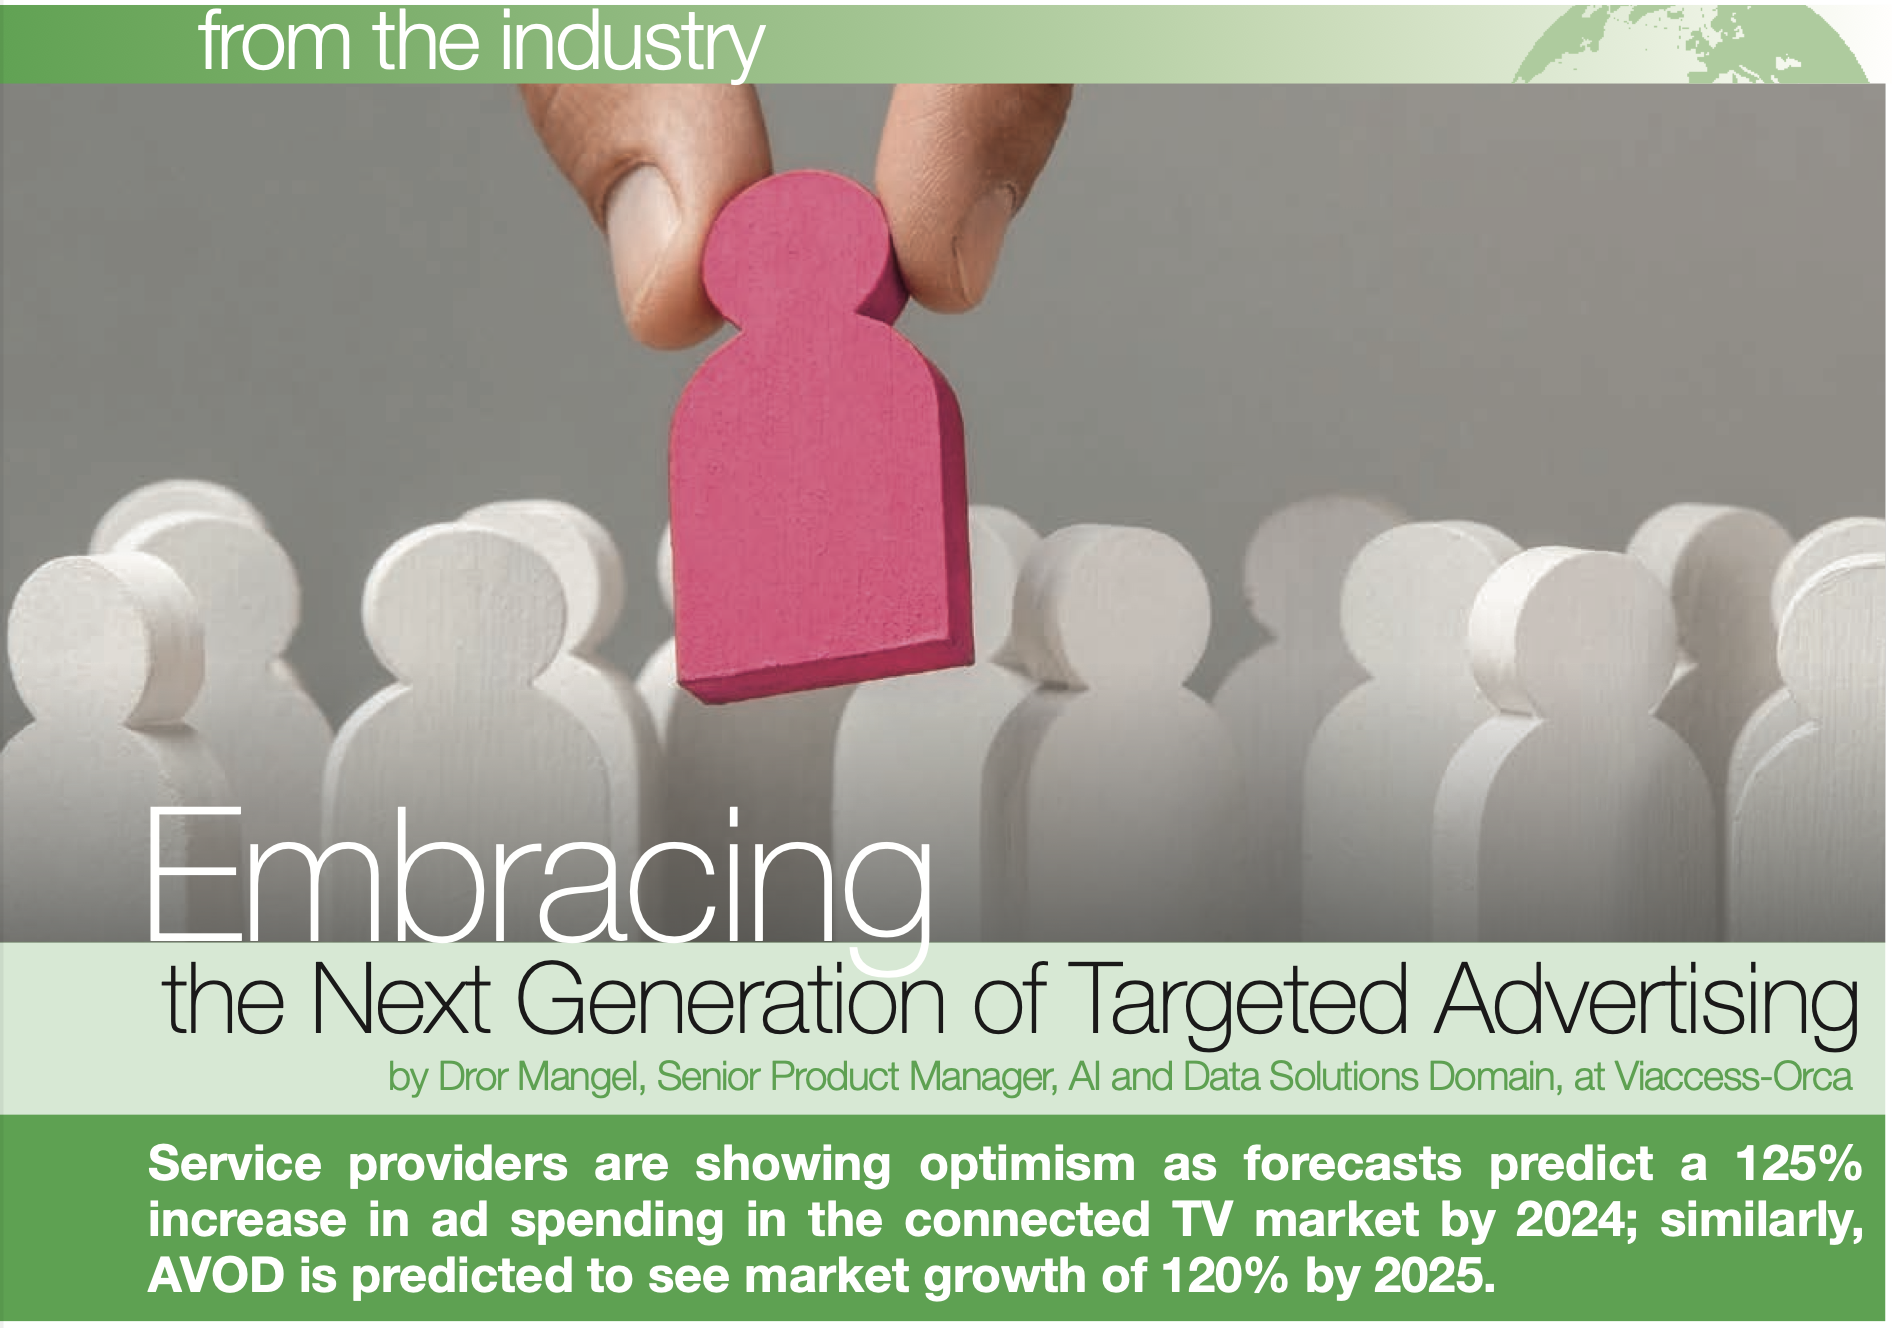 June 2021: Embracing the Next Generation of Targeted Advertising